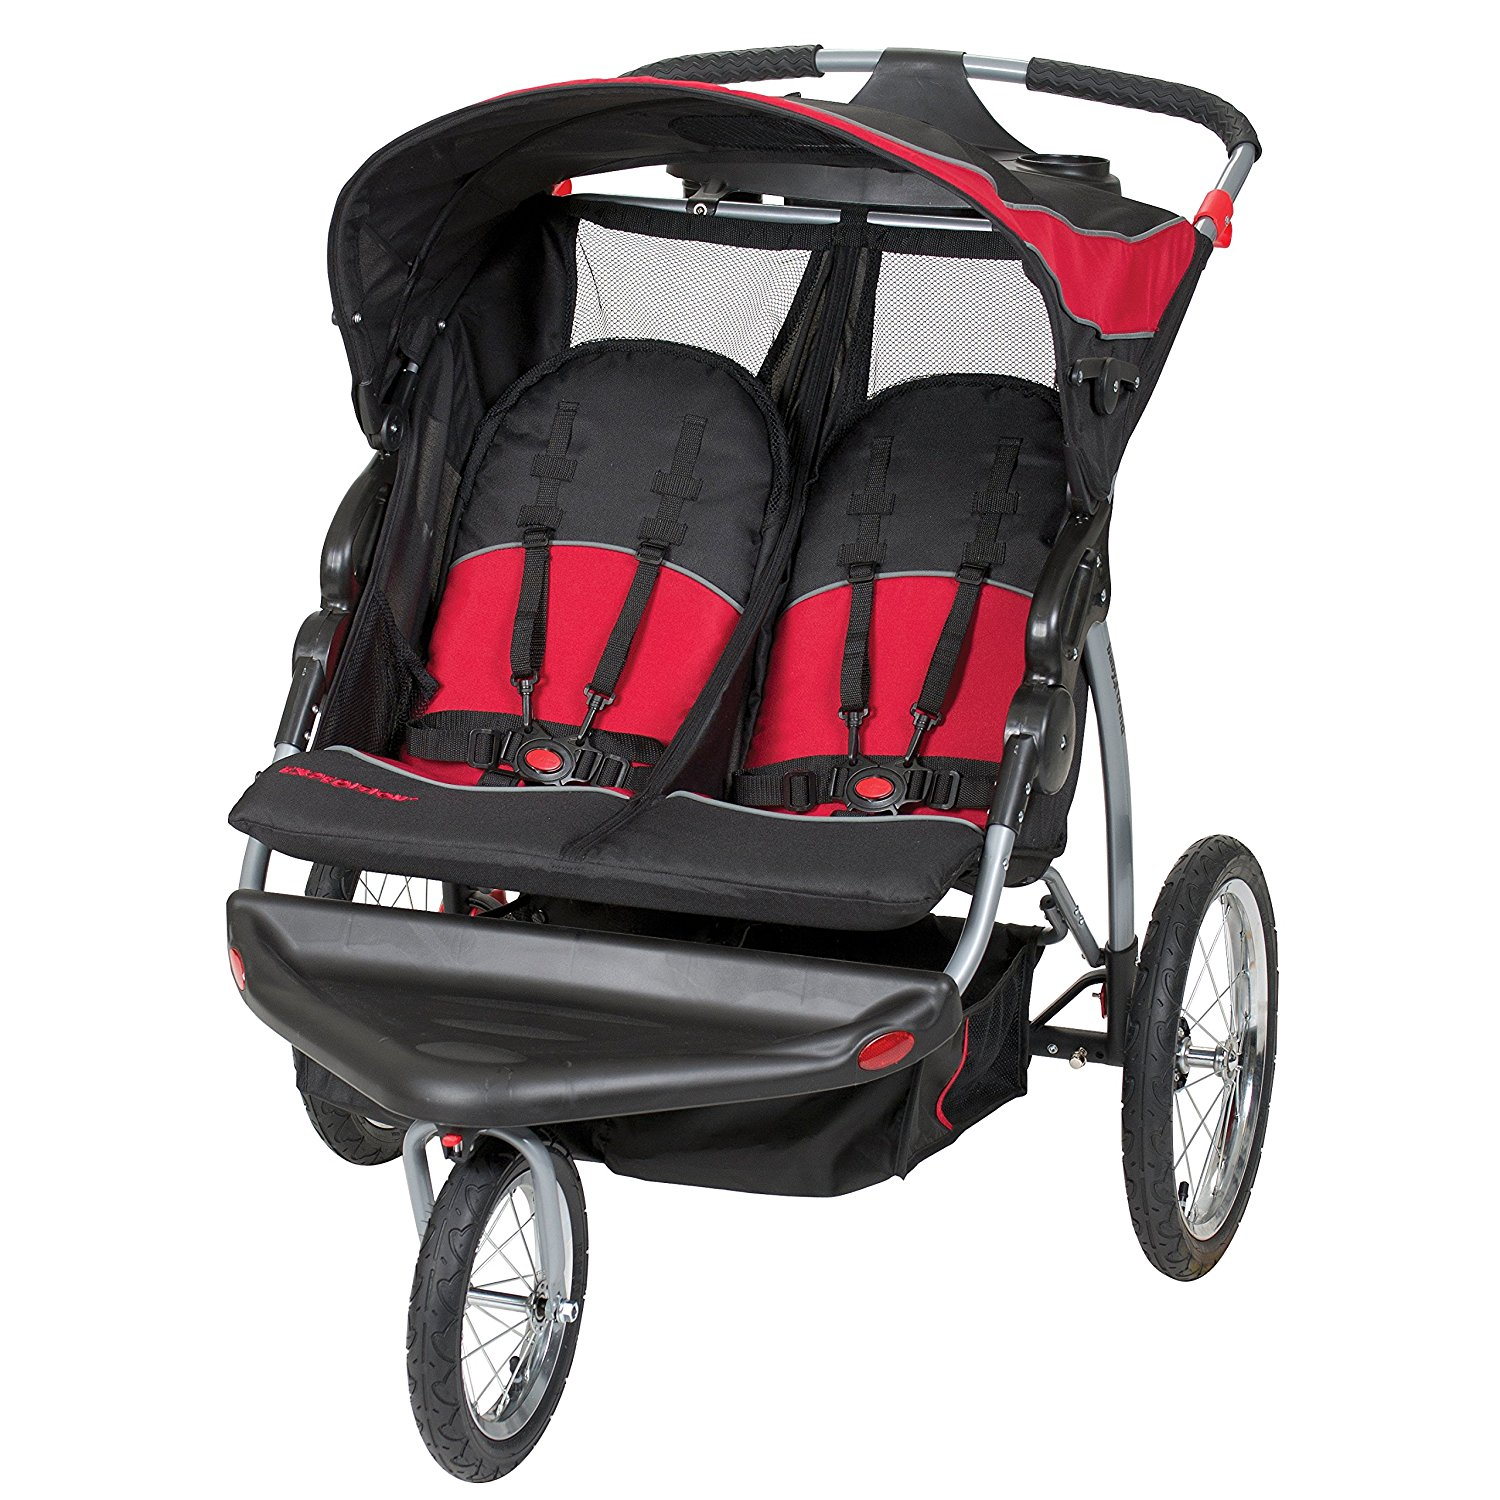 Baby Trend Dj96181 Lightweight Expedition Double Jogger